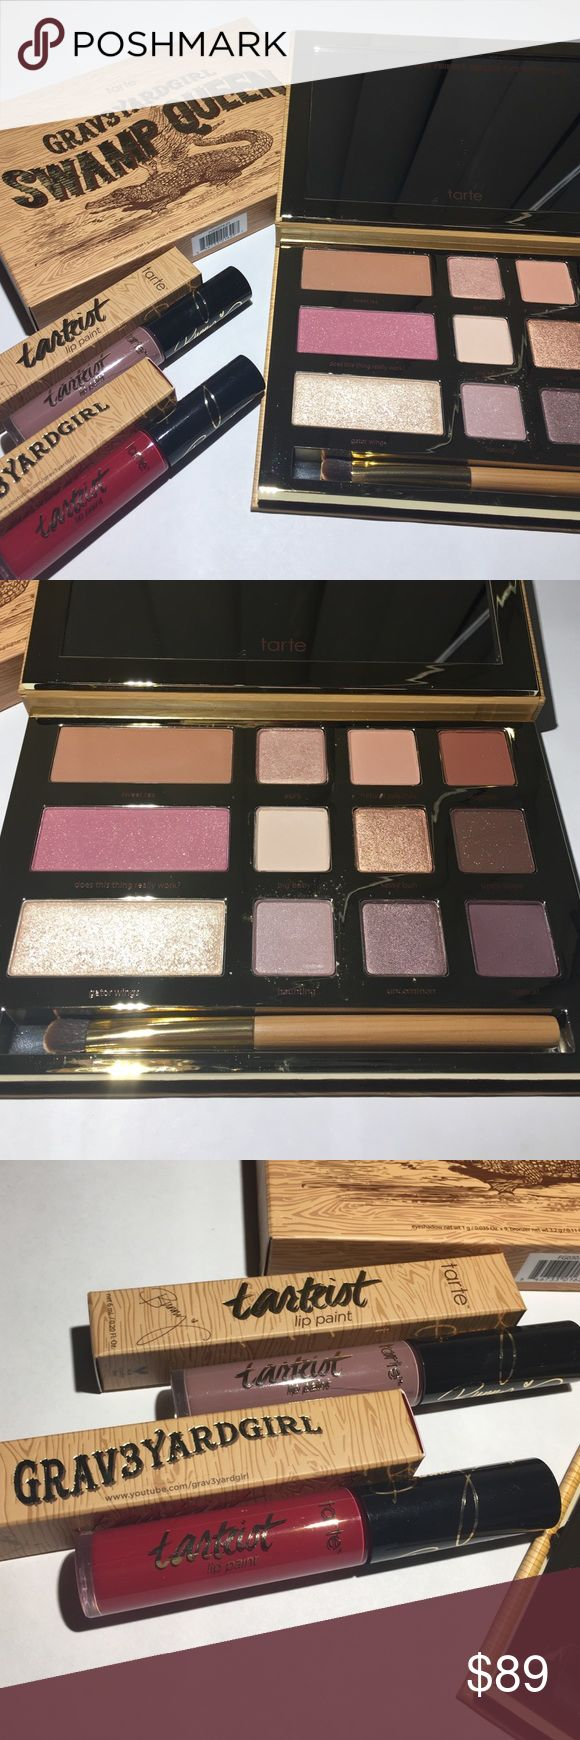 Tarte Swamp Queen Palette and Lip Paints Set Tarte Grav3yardGirl Swamp Queen Palette, Texas Toast Liquid Lipstick Lip Paint, and Swamp Family Liquid Lipstick Lip Paint Set. Brand new never used 100% authentic and priced below retail. tarte Makeup Eyeshadow